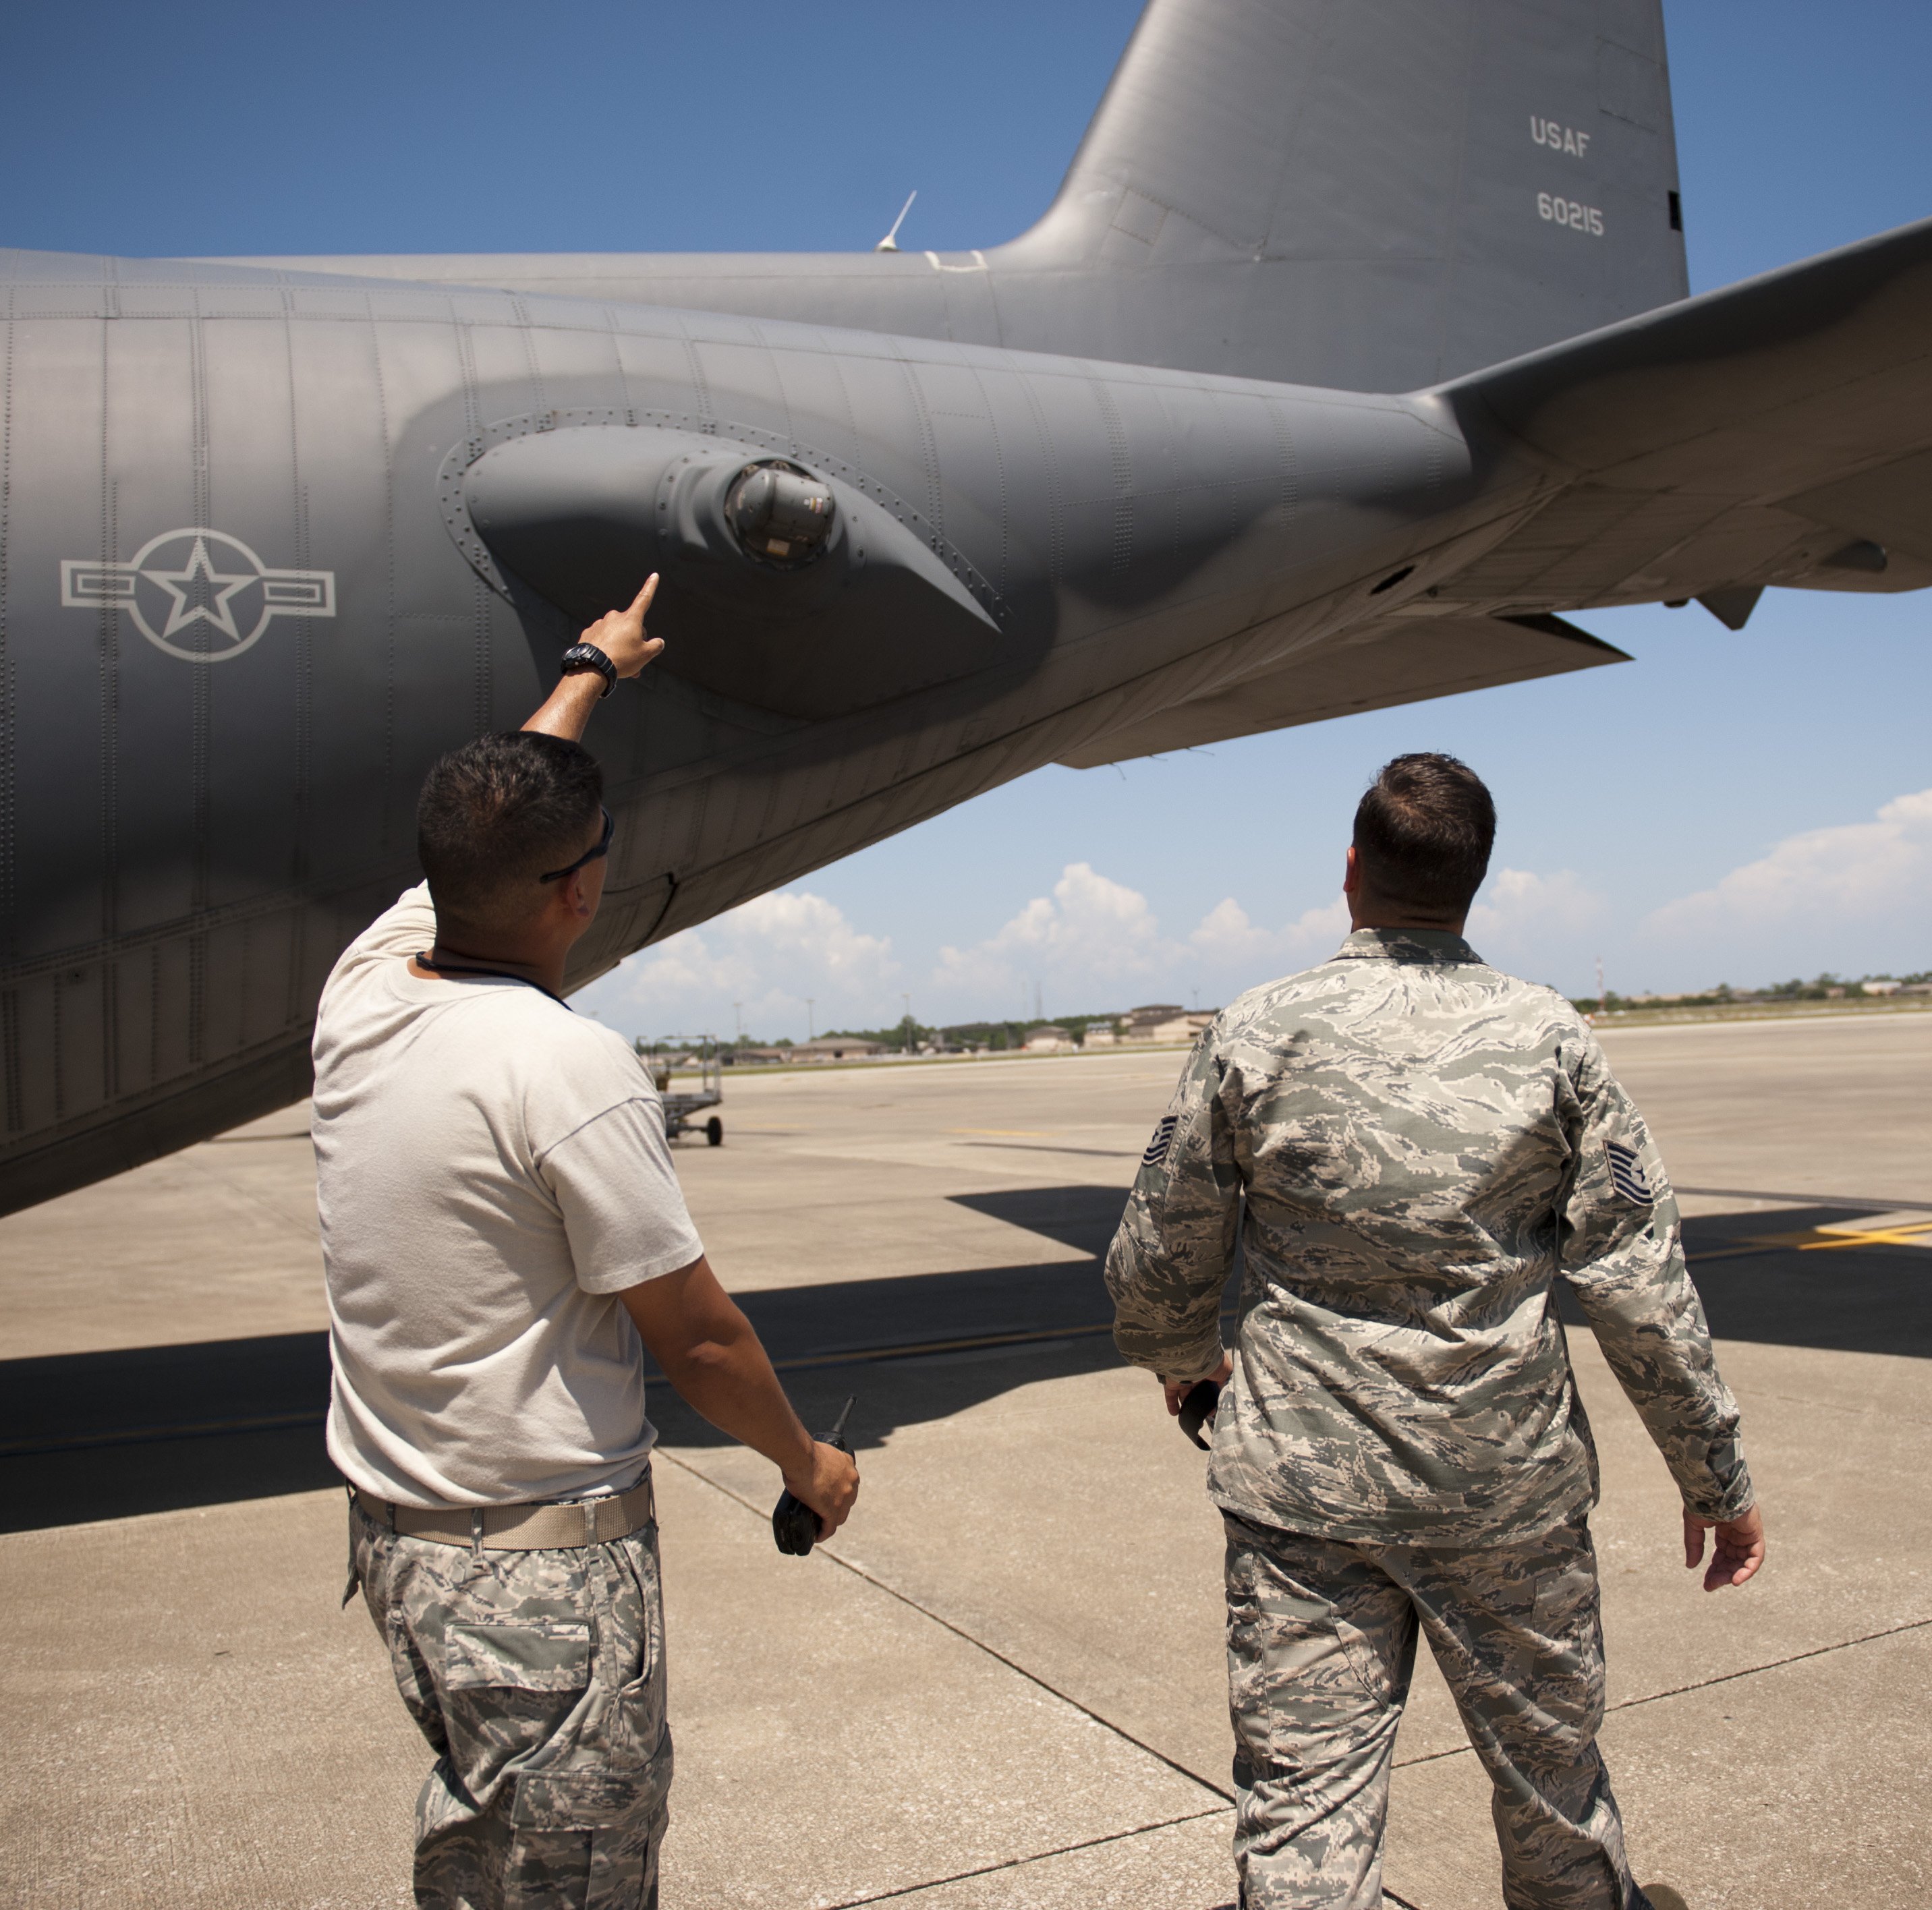 ignacio senior dating site Silver senior dating is a niche dating site for those who are slightly older than your average online dater and looking for a more tailored experience we offer extensive filters that enable you to find the right personality match to give you the best chance of finding a meaningful relationship.